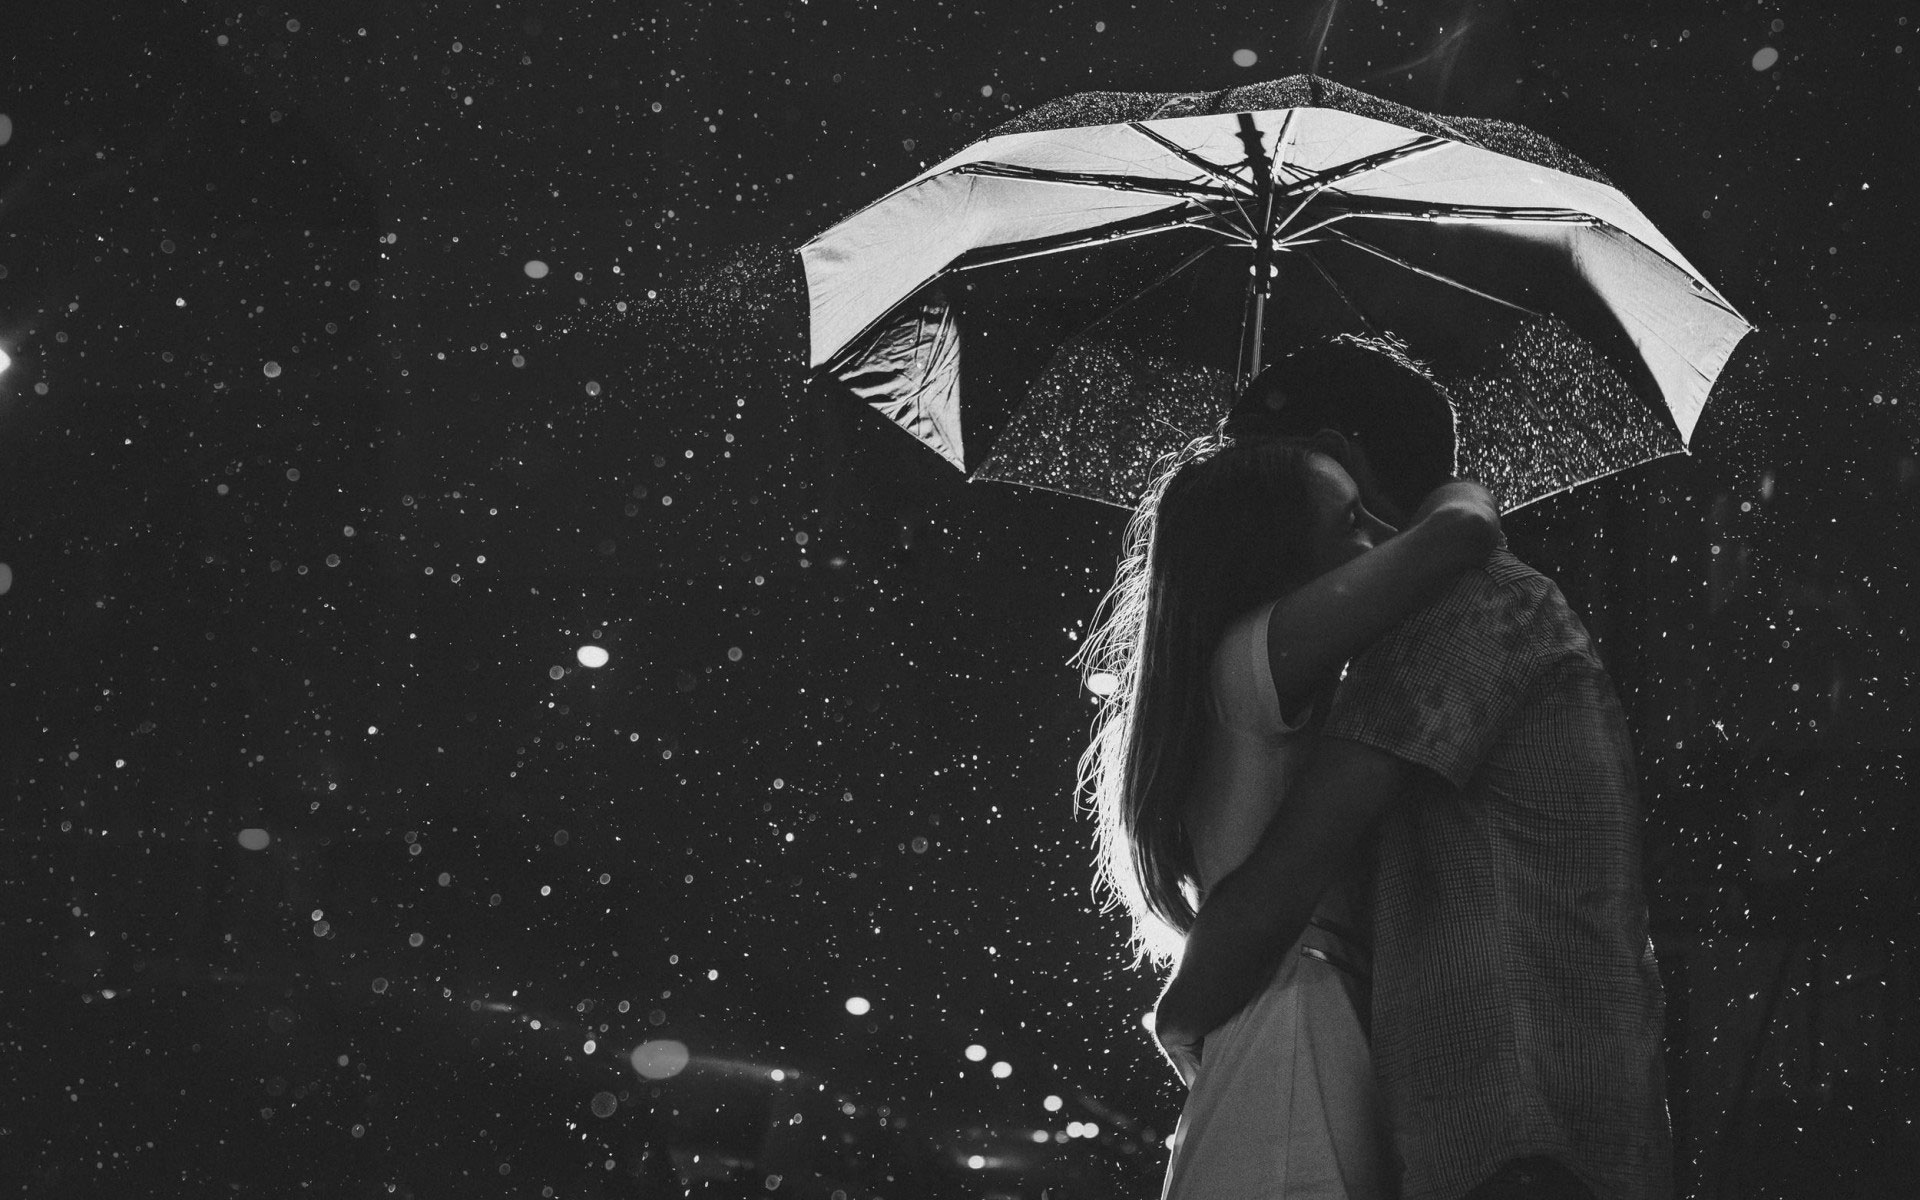 Wonderful Wallpaper Love Black And White - love-couple-in-rain-black-and-white-wallpaper  Image_756668.jpg?92dbd0\u002692dbd0